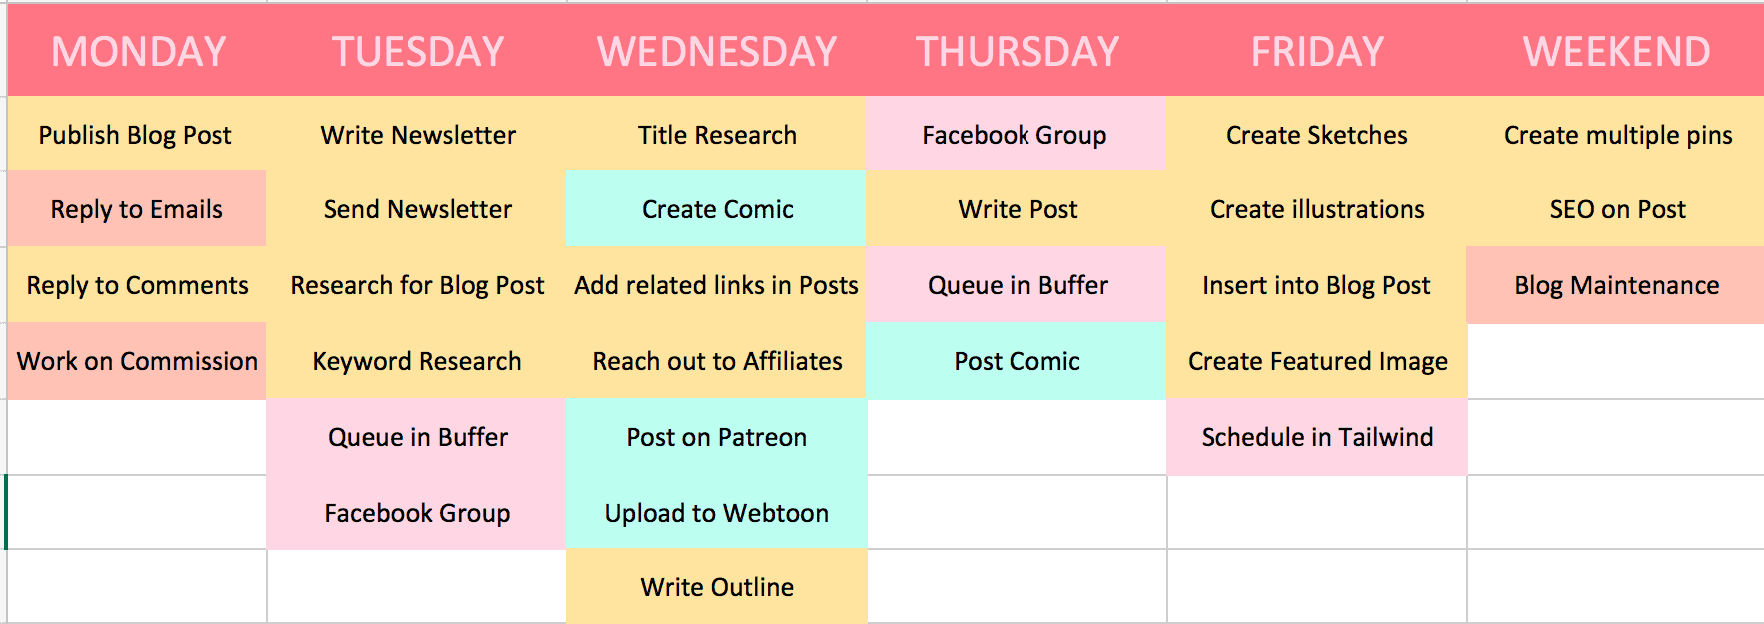 If you use Excel, you can create a posting schedule and a blog content plan with that.